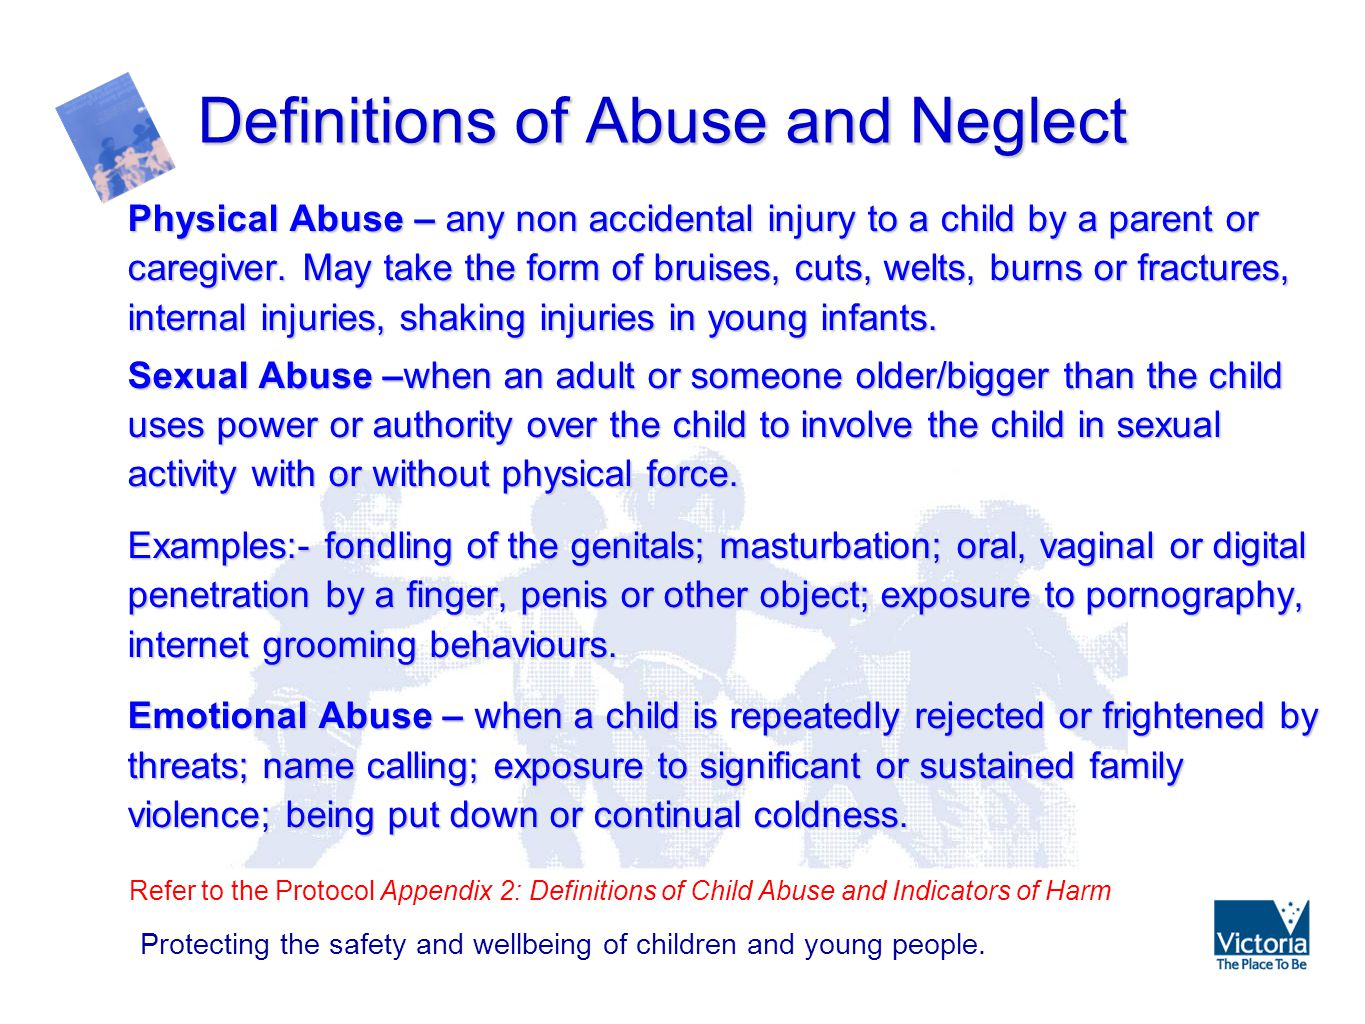 """definitions of child abuse and neglect """"child abuse"""" includes physical, emotional and sexual abuse and/or neglect it also addresses a pattern of abuse and risks of harm some definitions include."""